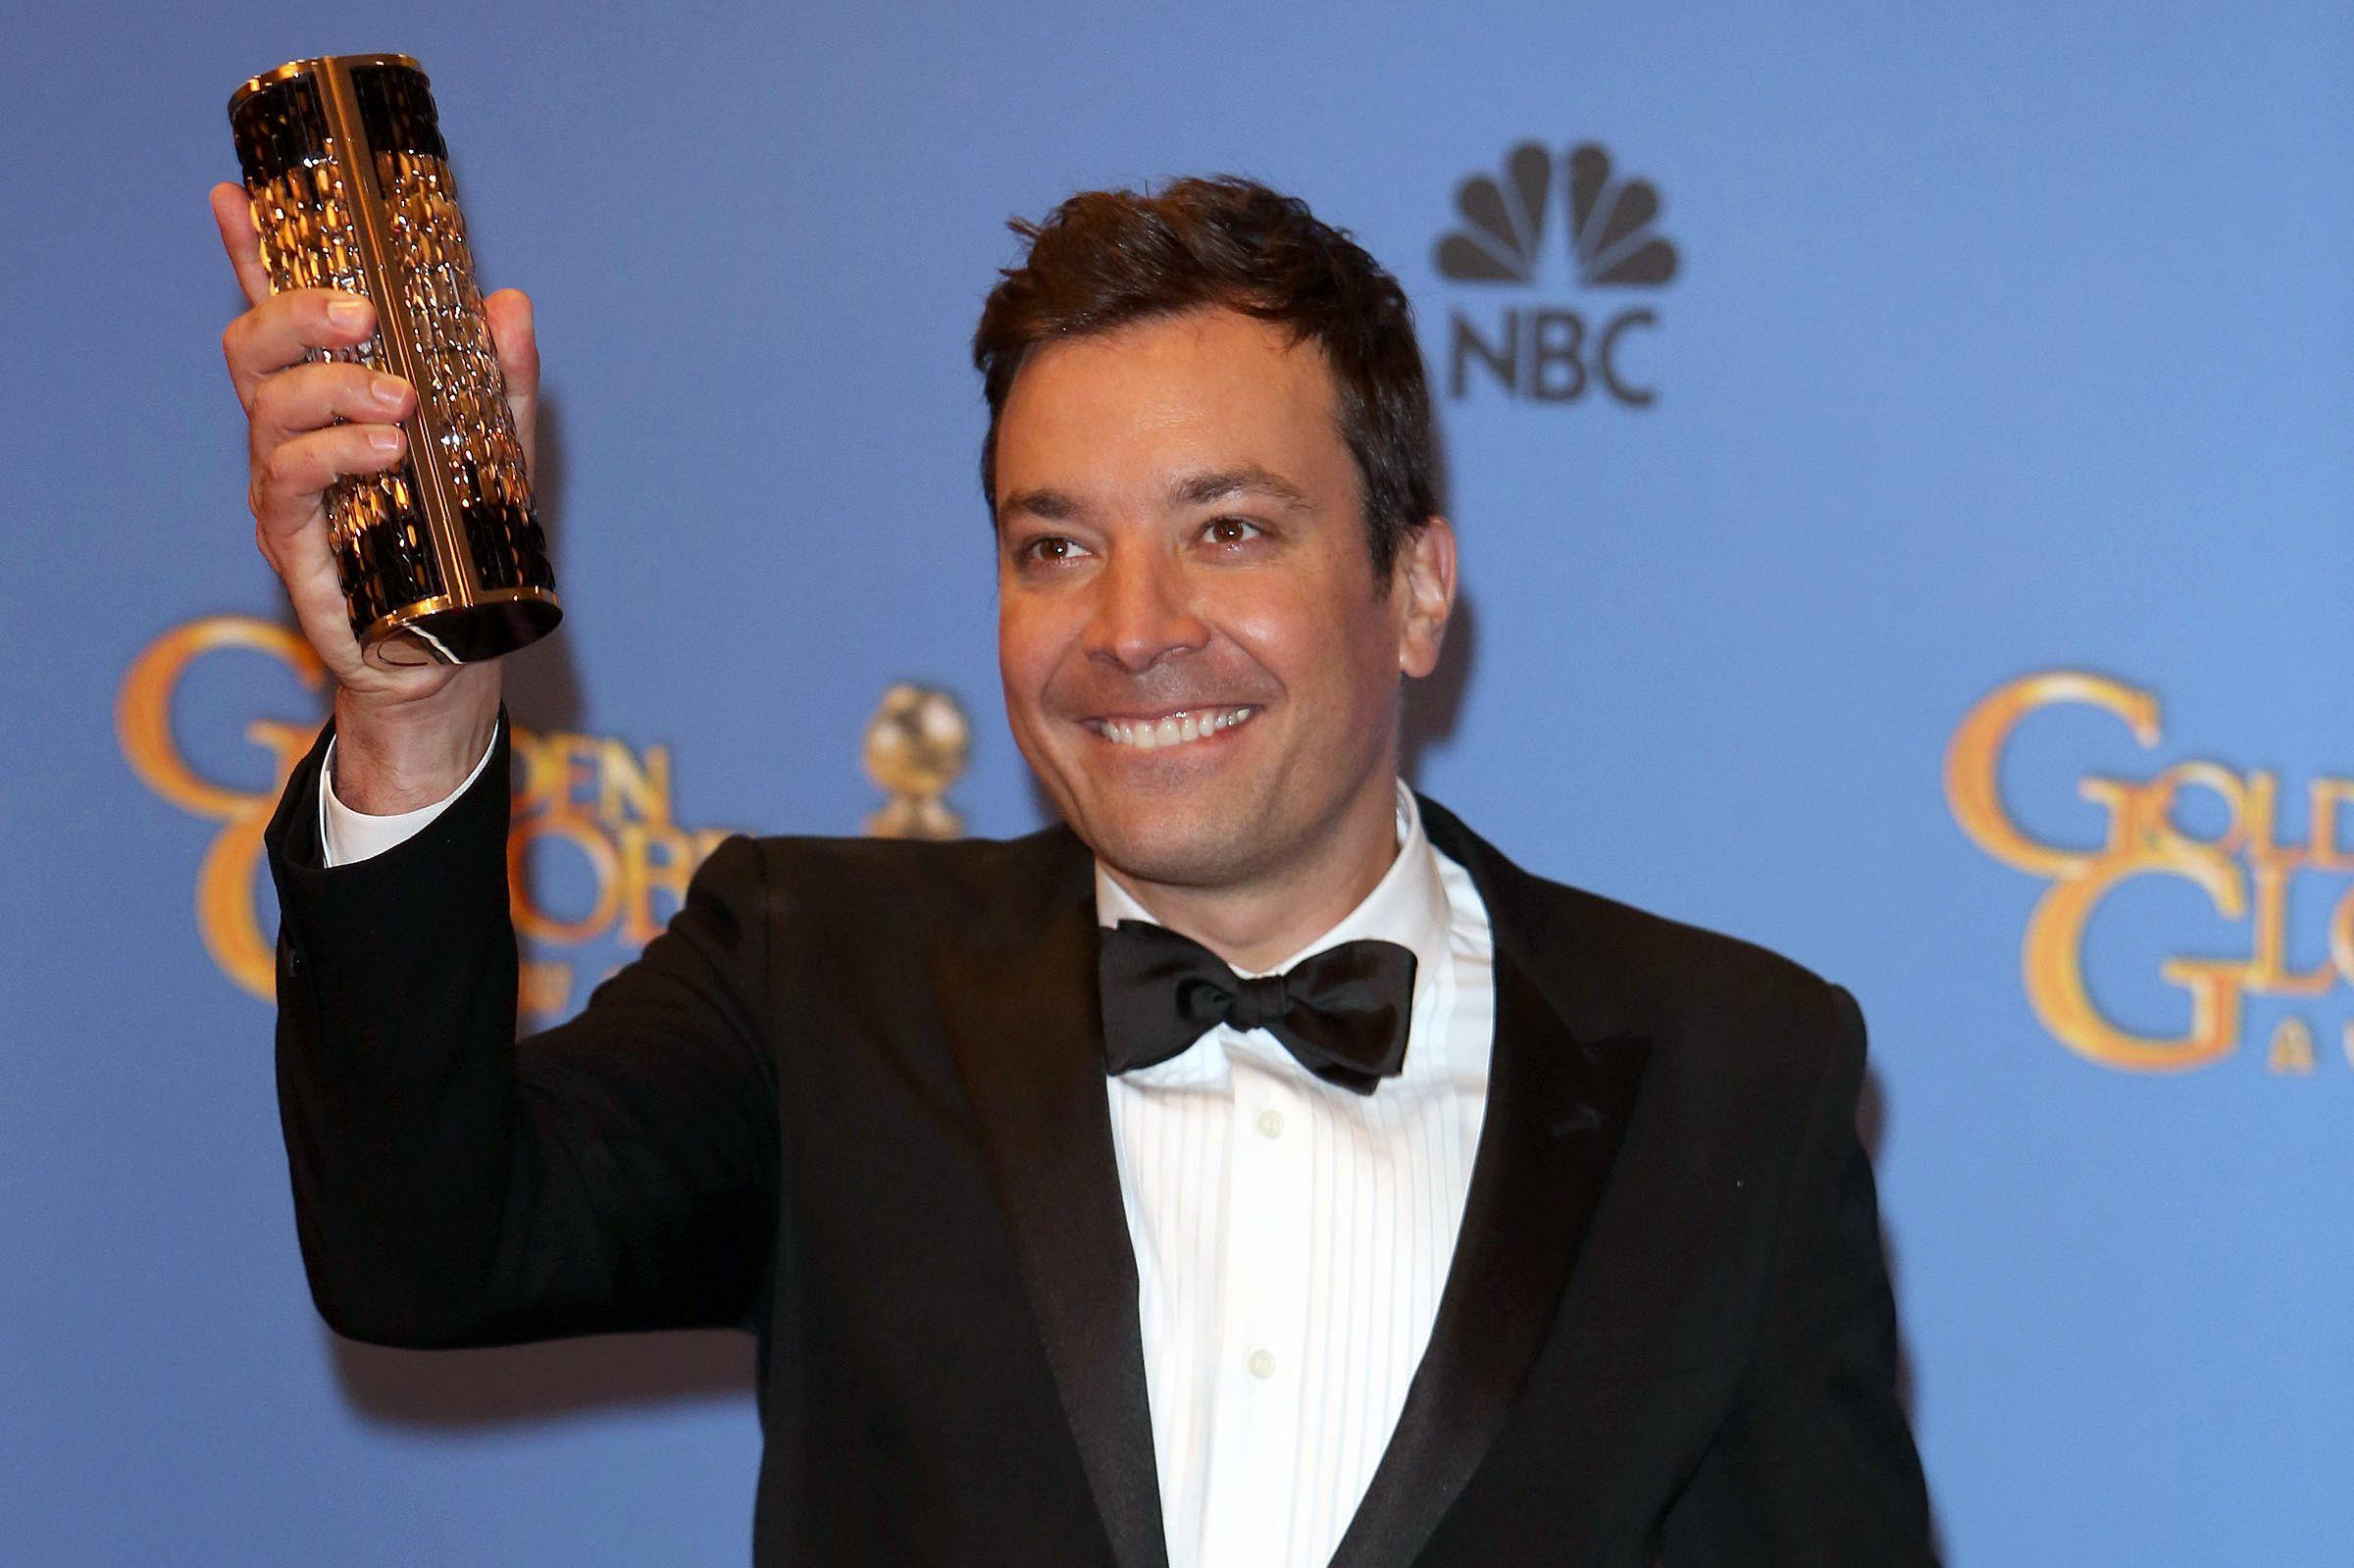 Jimmy Fallon High Definition Wallpapers